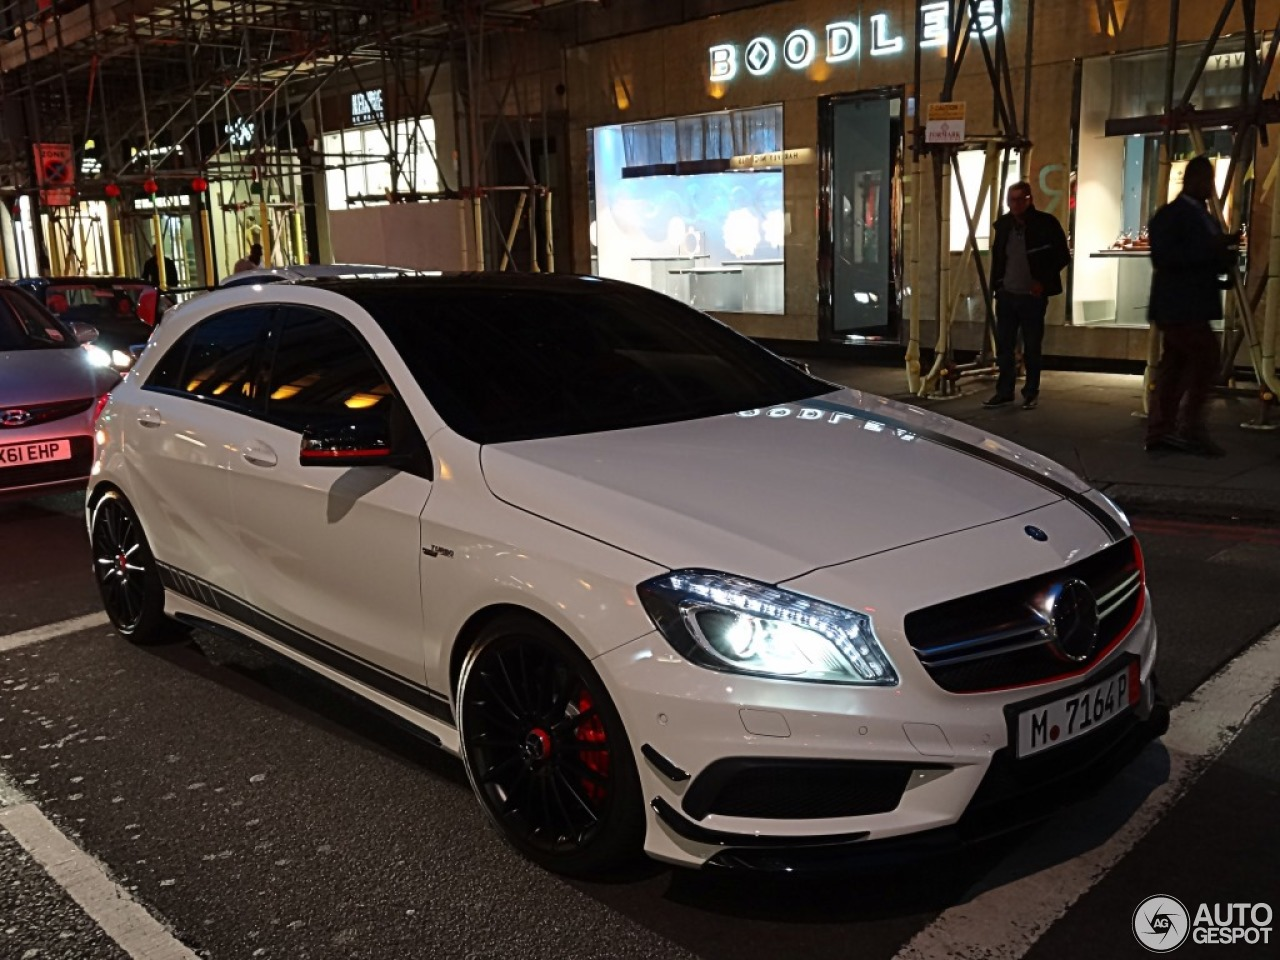 Mercedes benz a 45 amg edition 1 9 september 2013 for Mercedes benz a 45